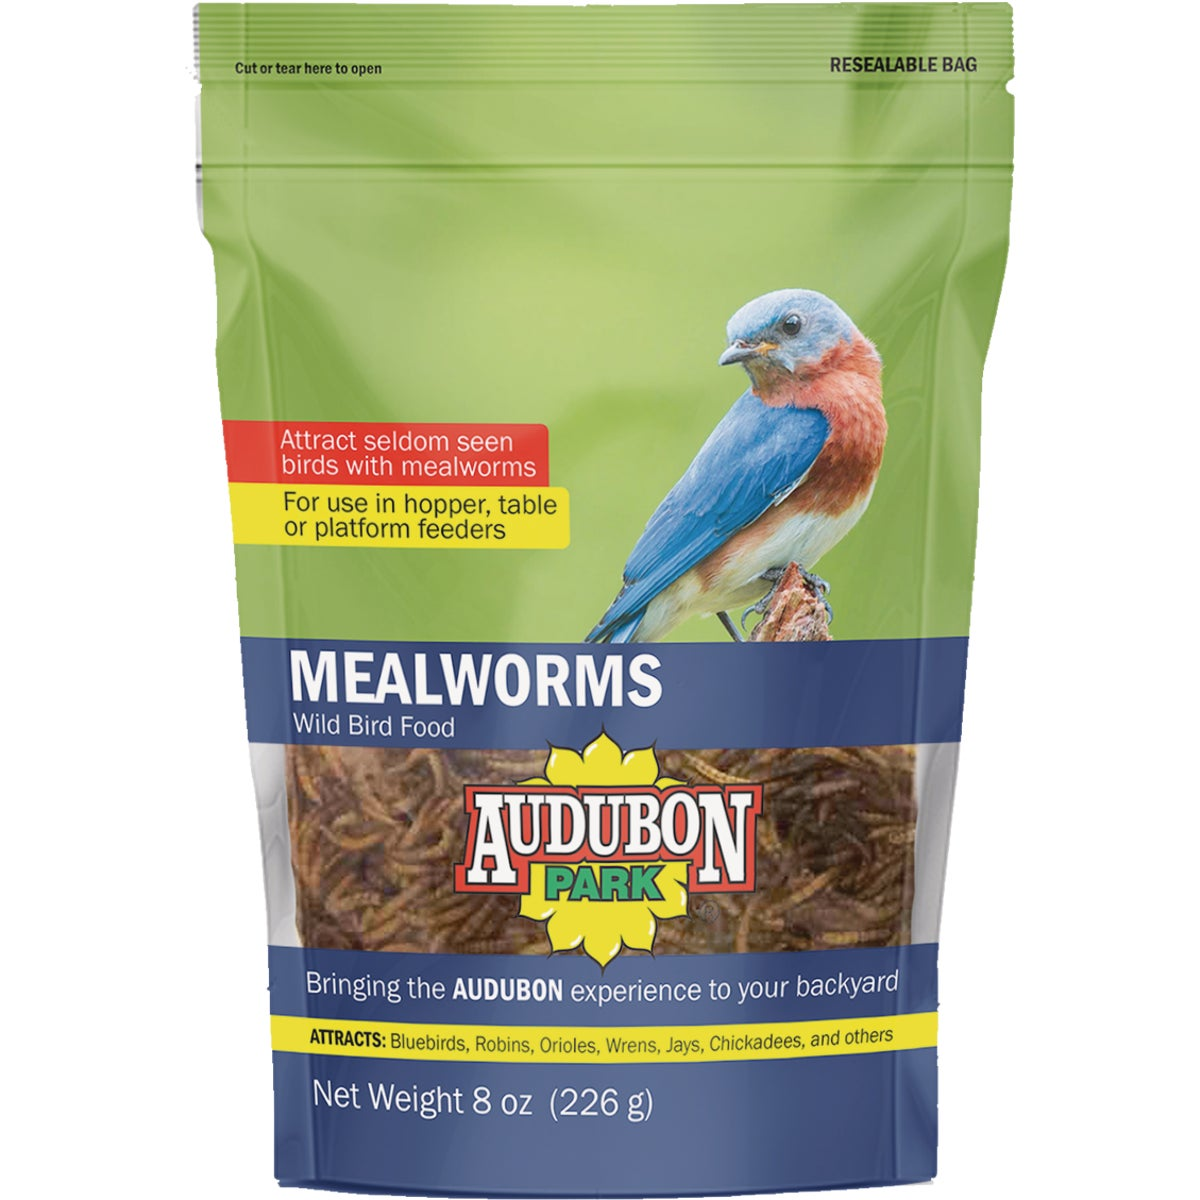 7 OZ MEALWORMS - 38097 by Hiatt Manufacturing